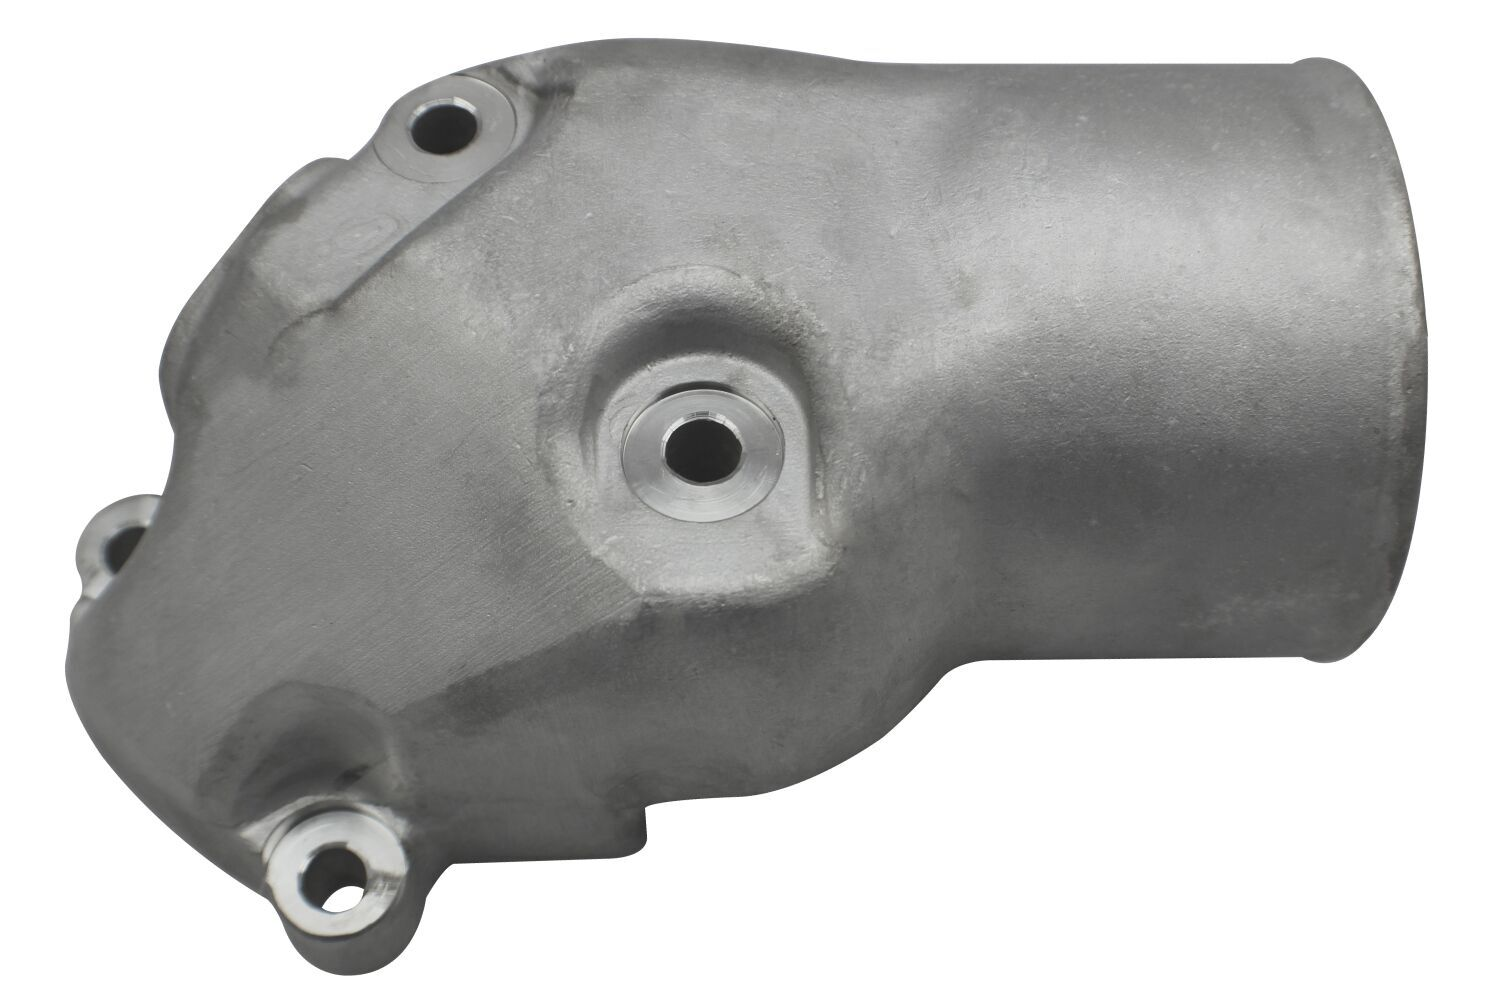 861289 VG1 Stainless Steel Mixing Elbow Replaces Volvo Penta PN